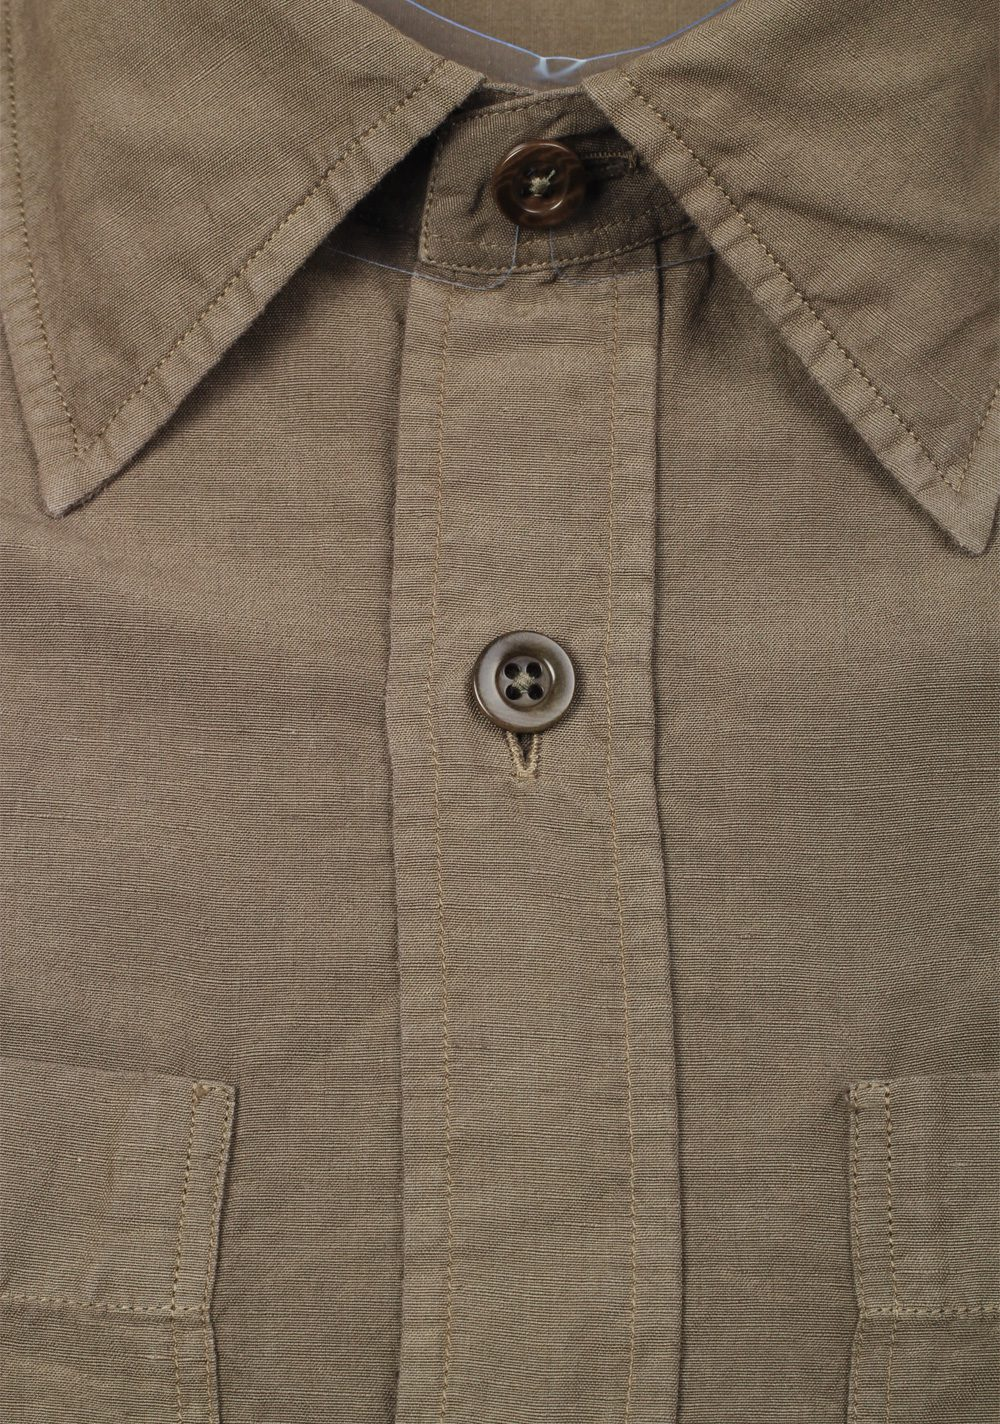 TOM FORD Solid Brown Casual Shirt Size 40 / 15,75 U.S. | Costume Limité